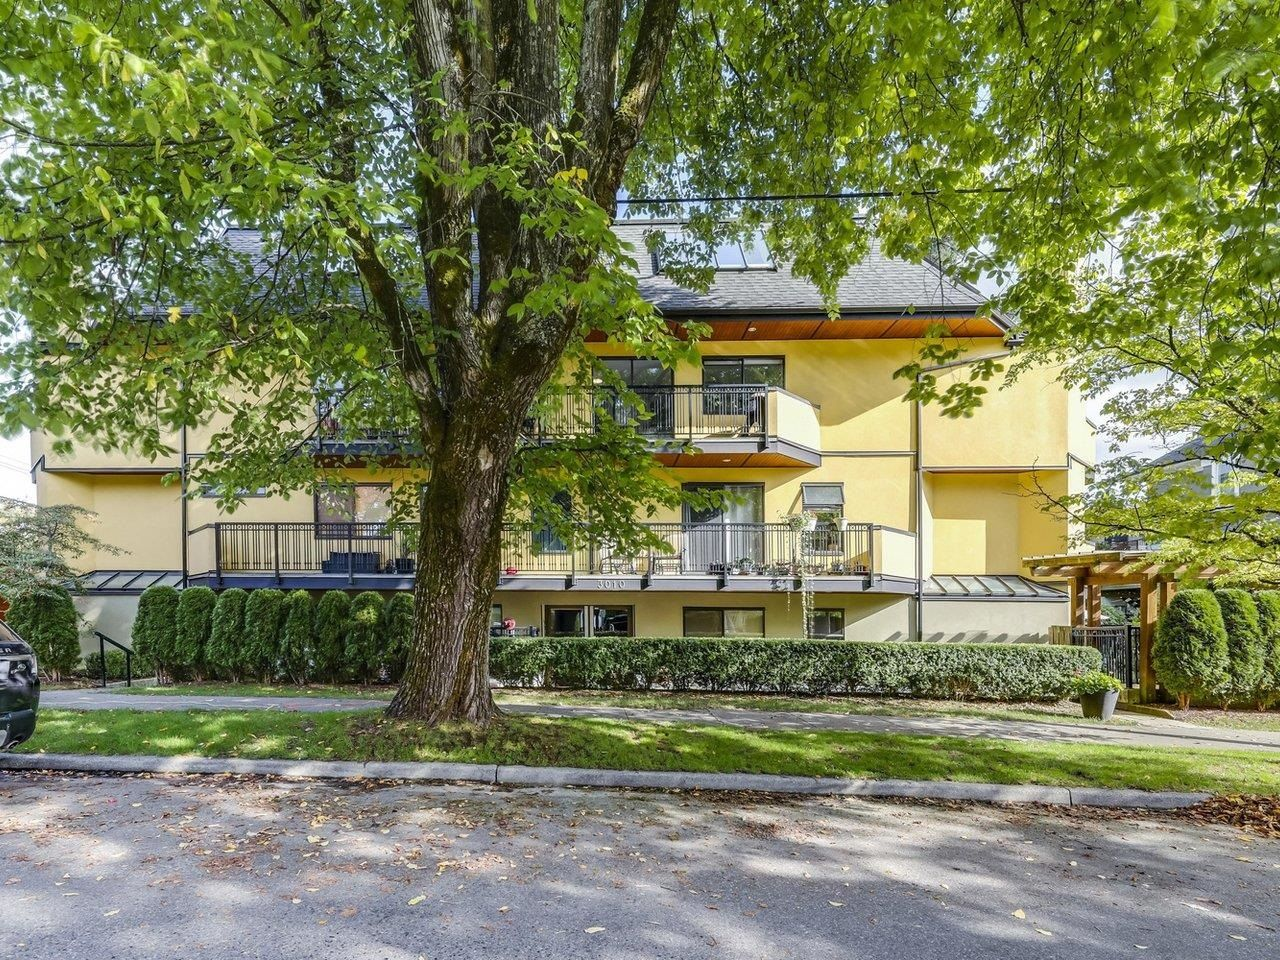 Main Photo: 303 3010 ONTARIO Street in Vancouver: Mount Pleasant VE Condo for sale (Vancouver East)  : MLS®# R2625066